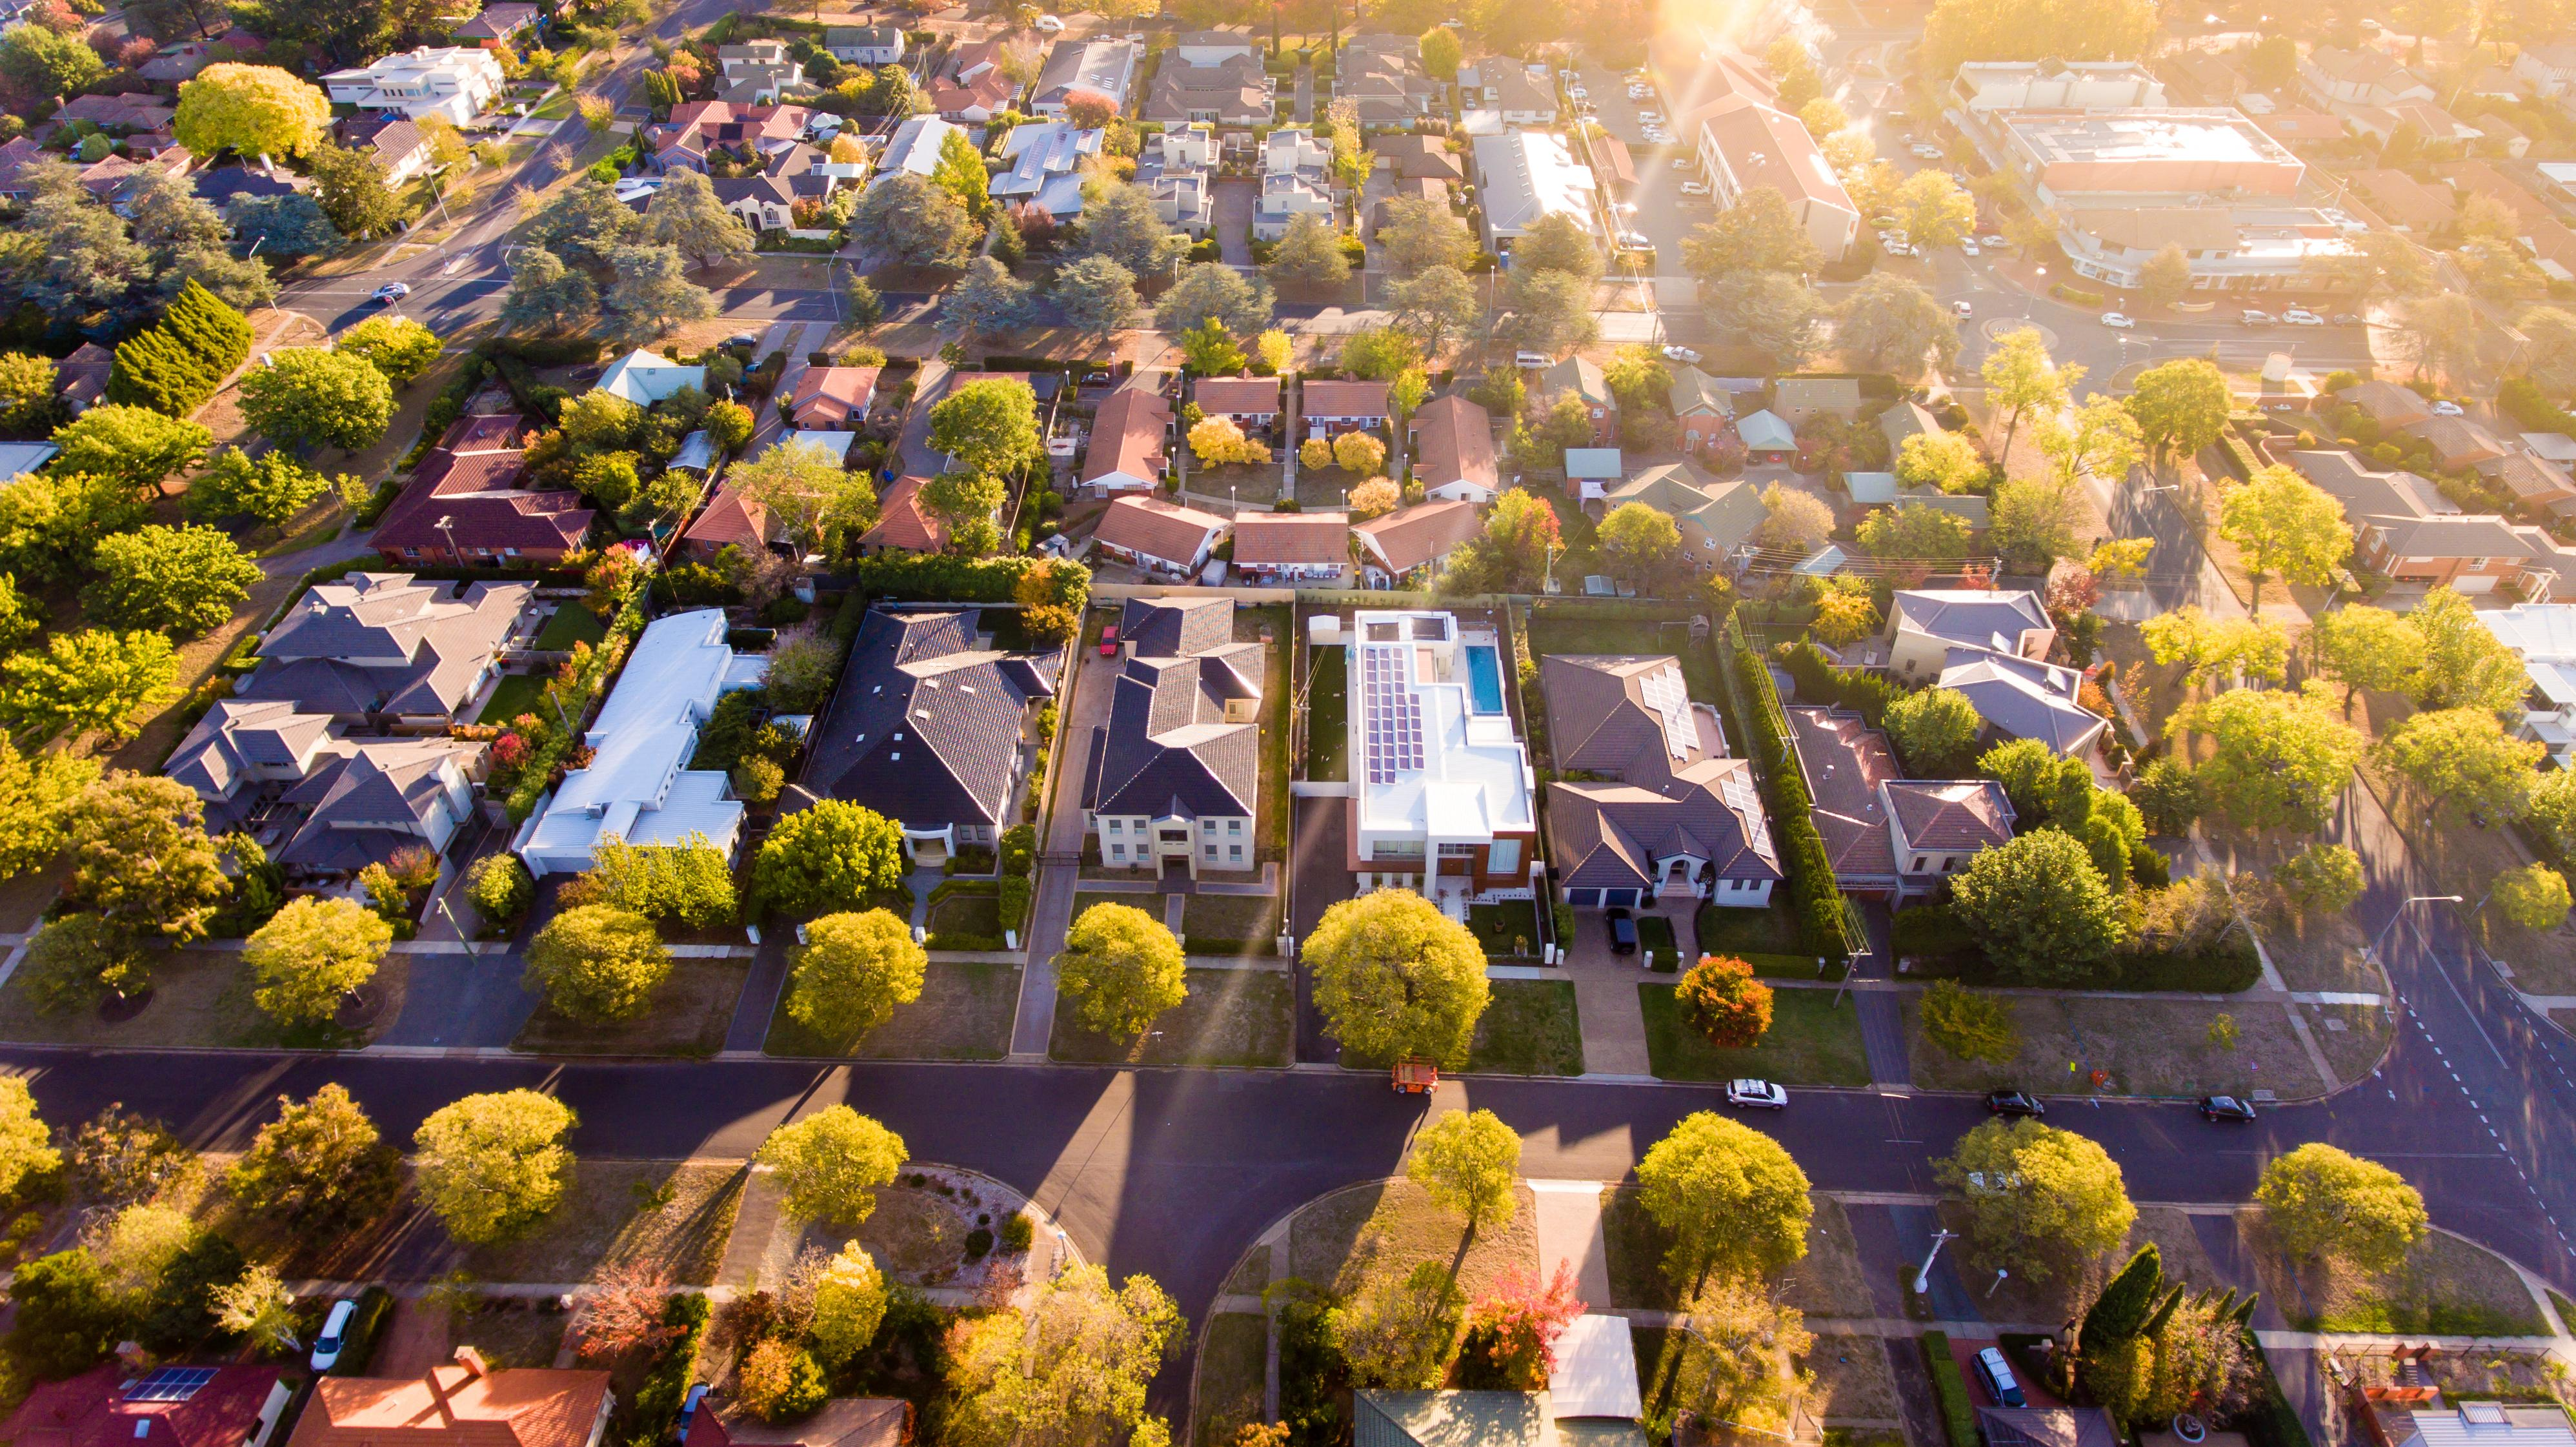 The suburbs where the most houses are selling